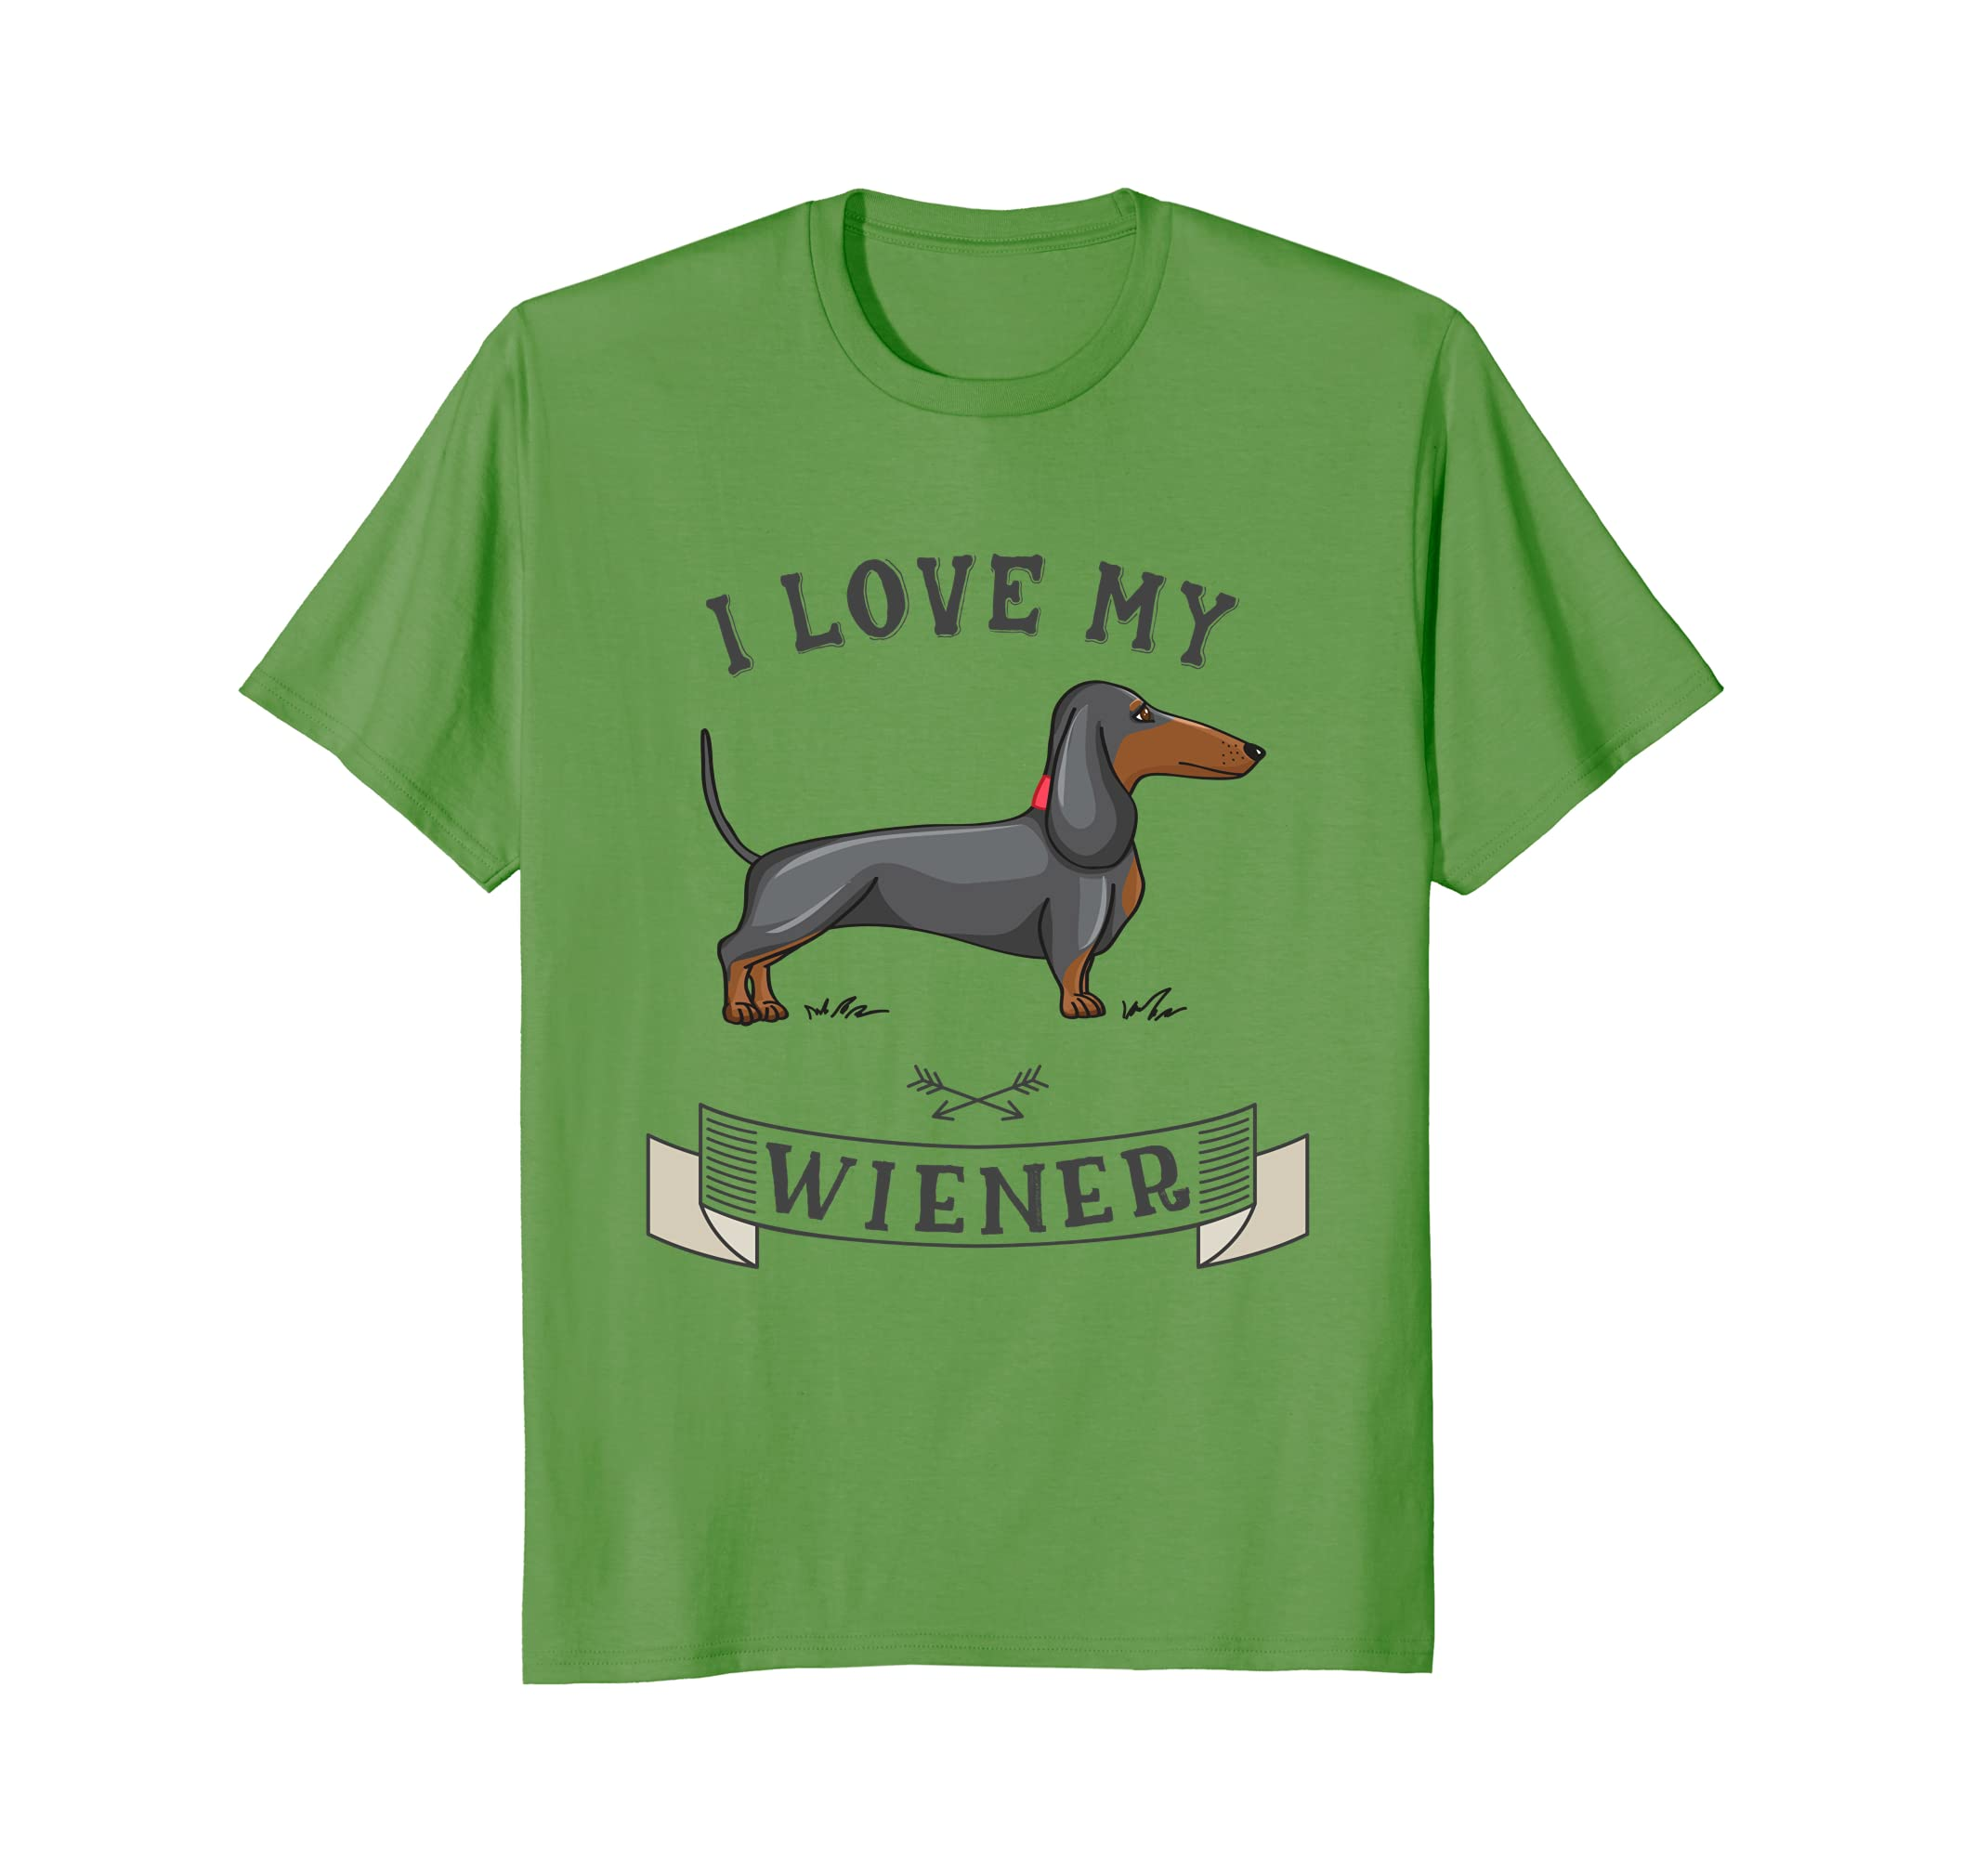 2644d369 Amazon.com: I LOVE MY WIENER T-Shirt Dachshund Weiner Dog funny gift tee:  Clothing